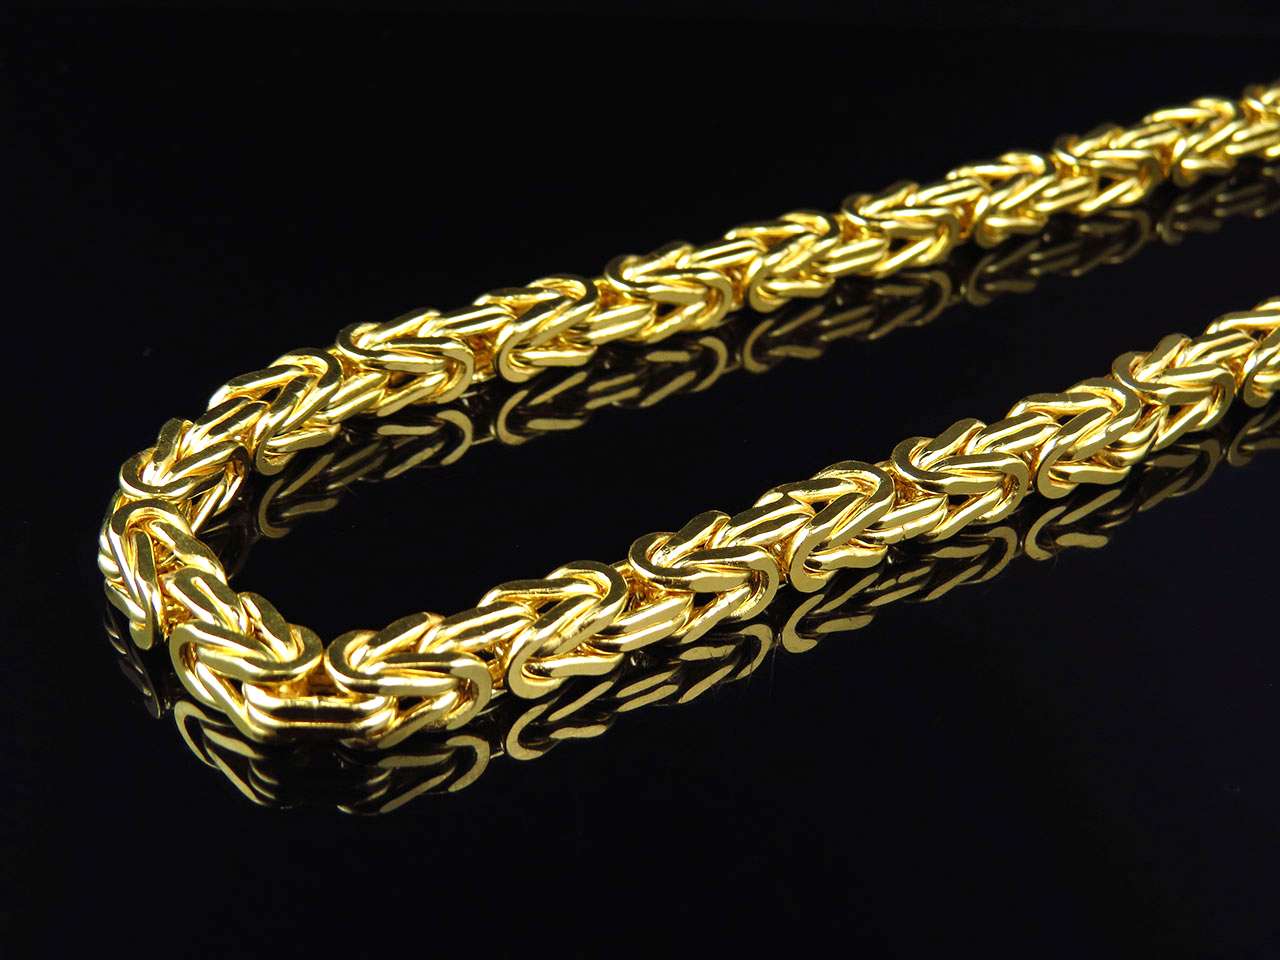 645af49181168 Details about Mens/ Ladies Bonded 1/20th 10K Yellow Gold 6 MM Byzantine  Chain Necklace 30-38